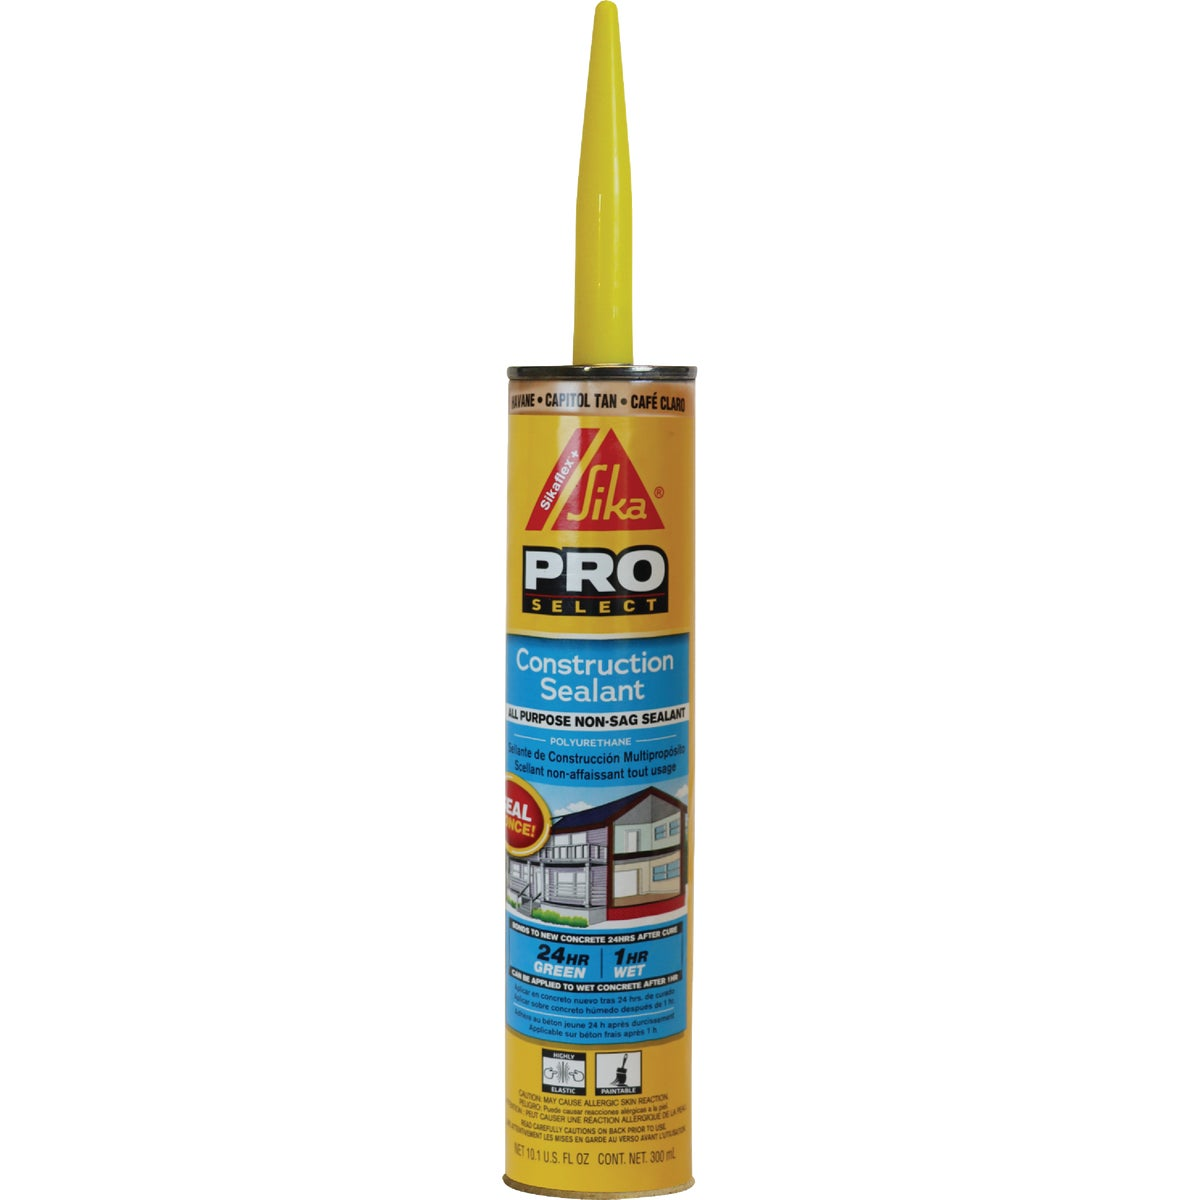 10 TAN SFLX CONS SEALANT